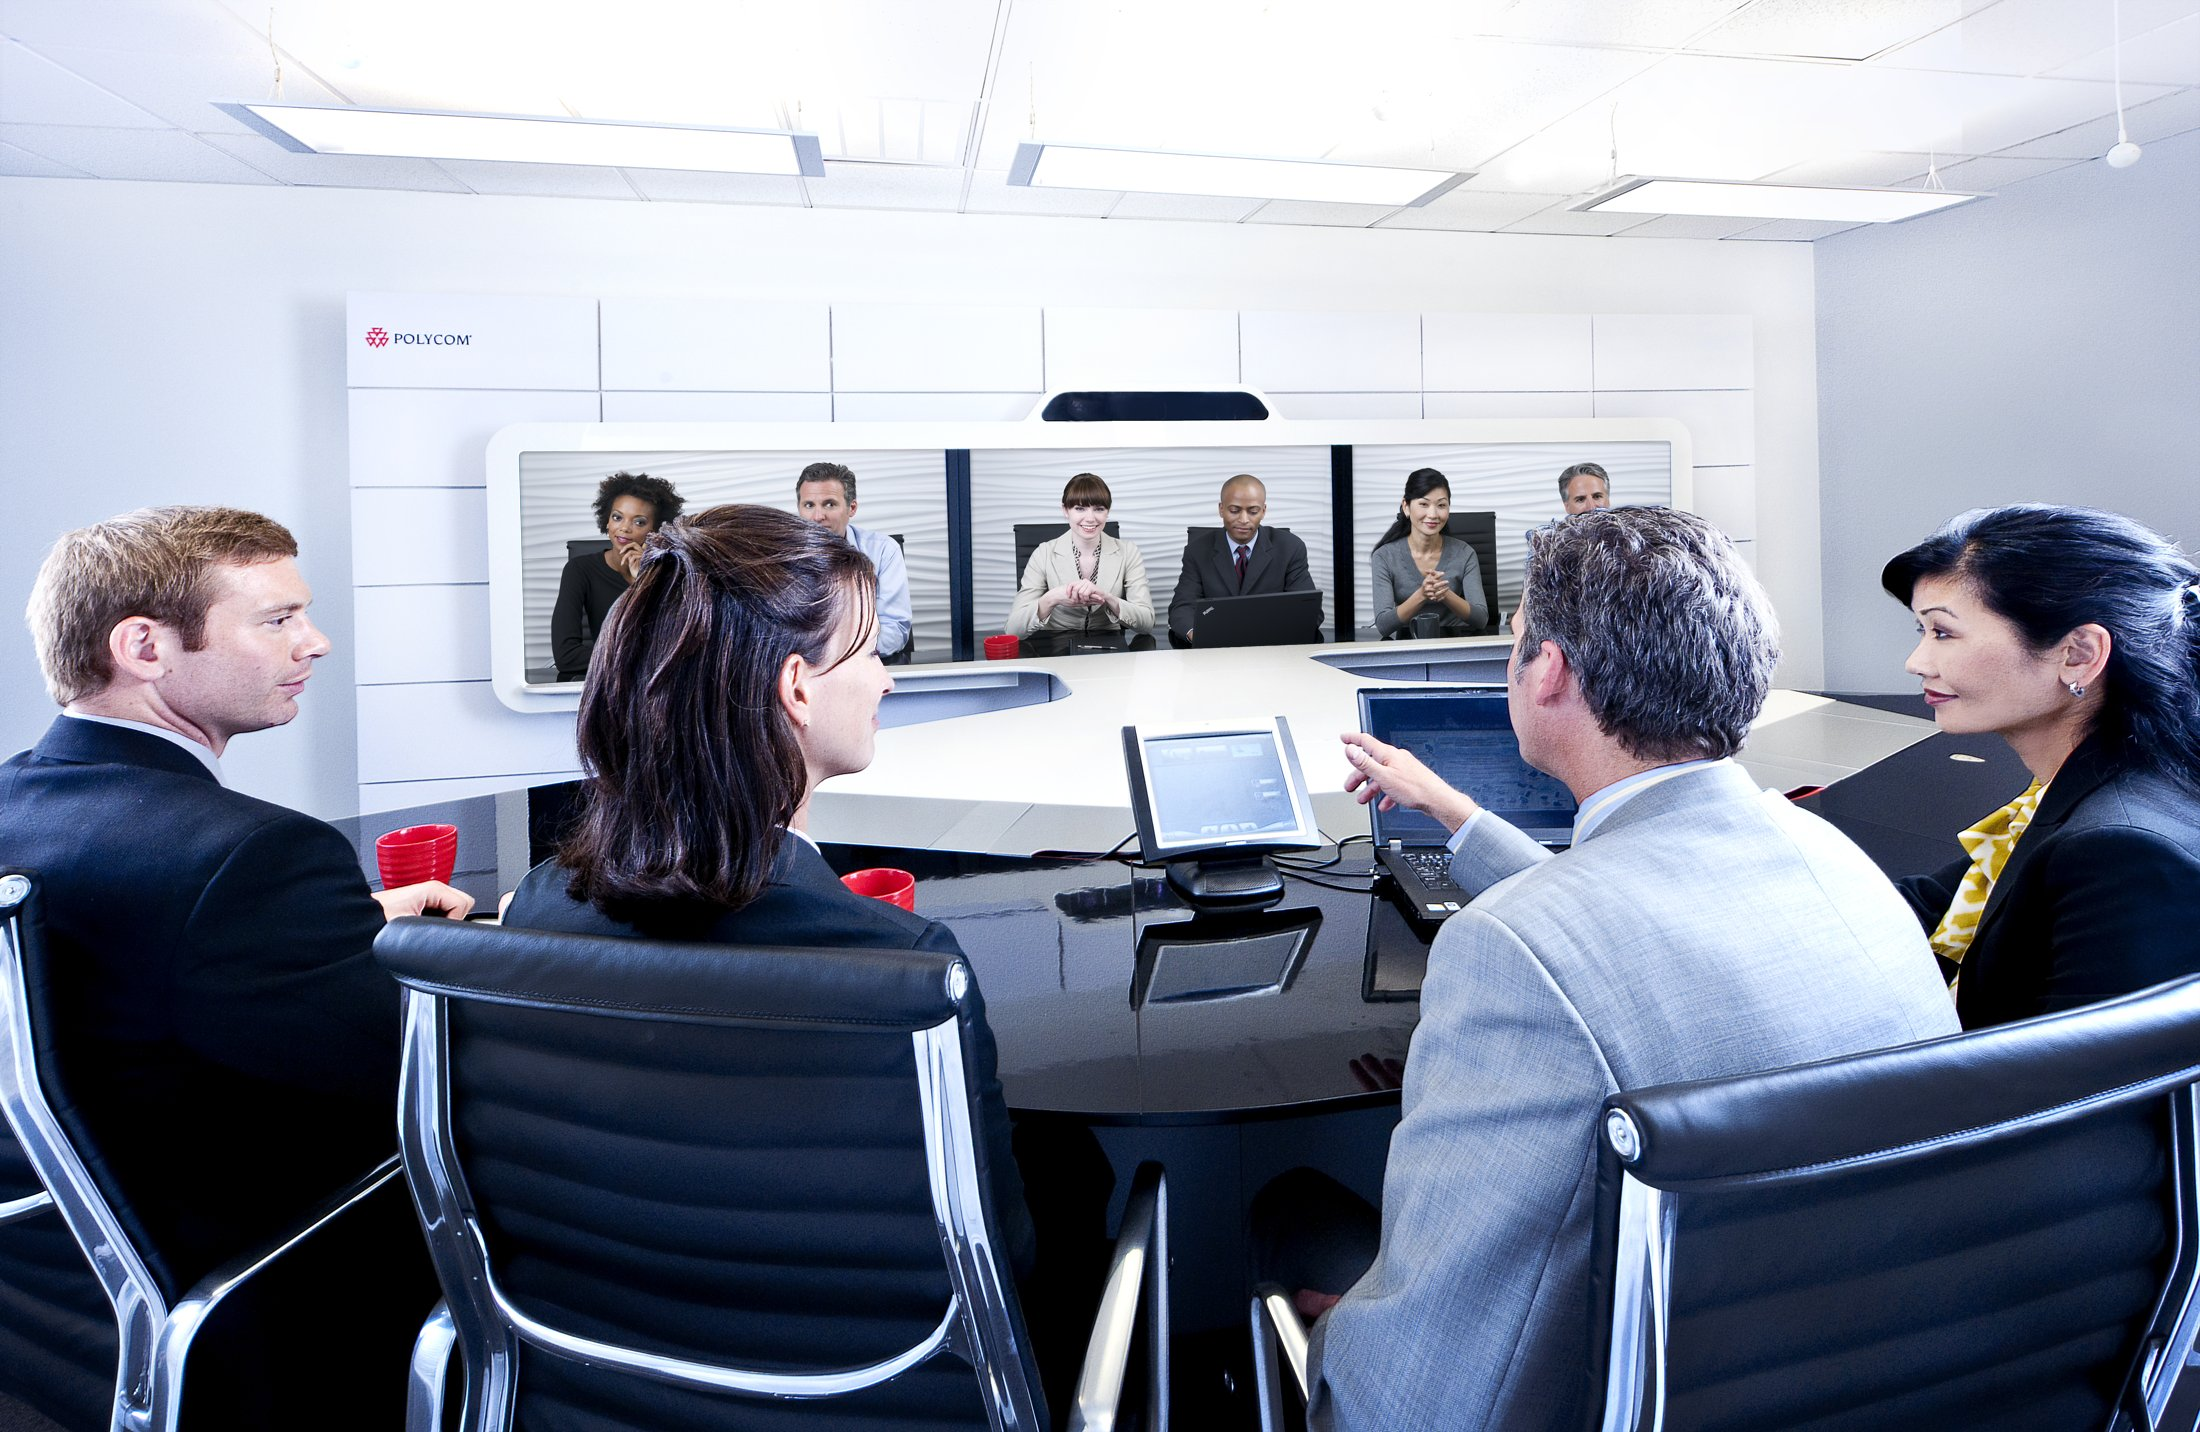 Polycom Launches Otx 300 New Modular Group Telepresence